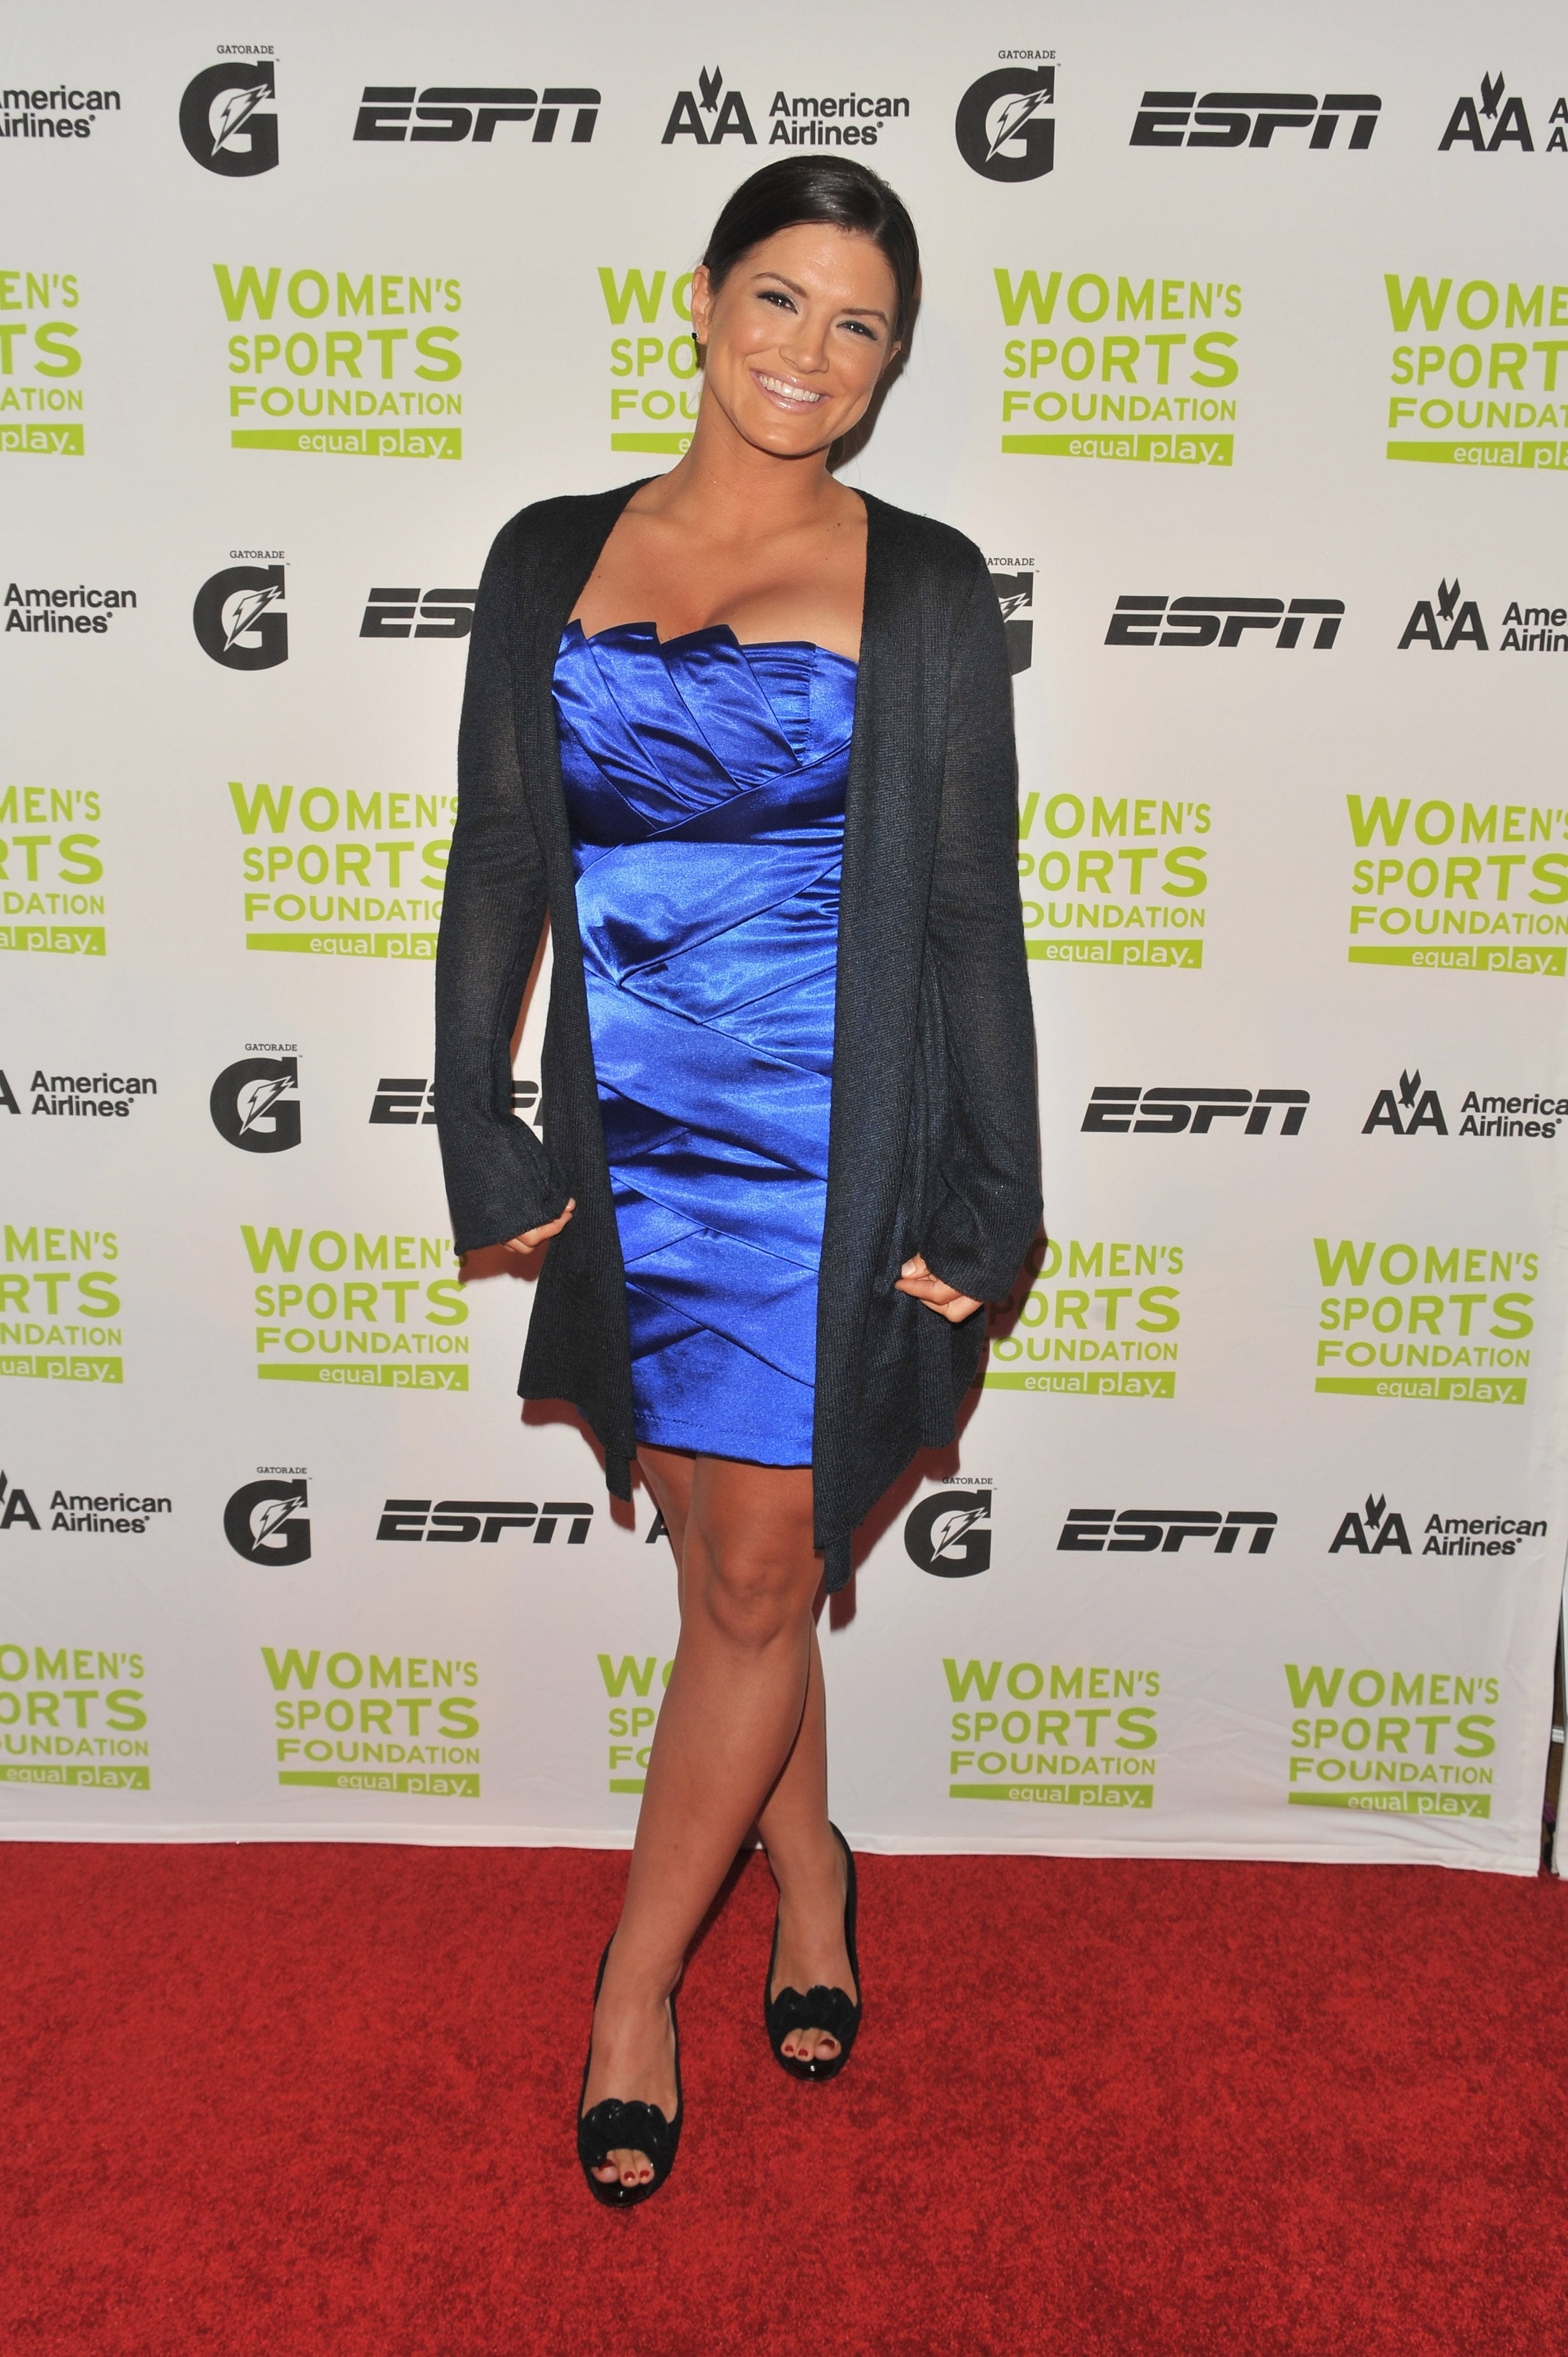 Gina Carano sexy feet in red carpet